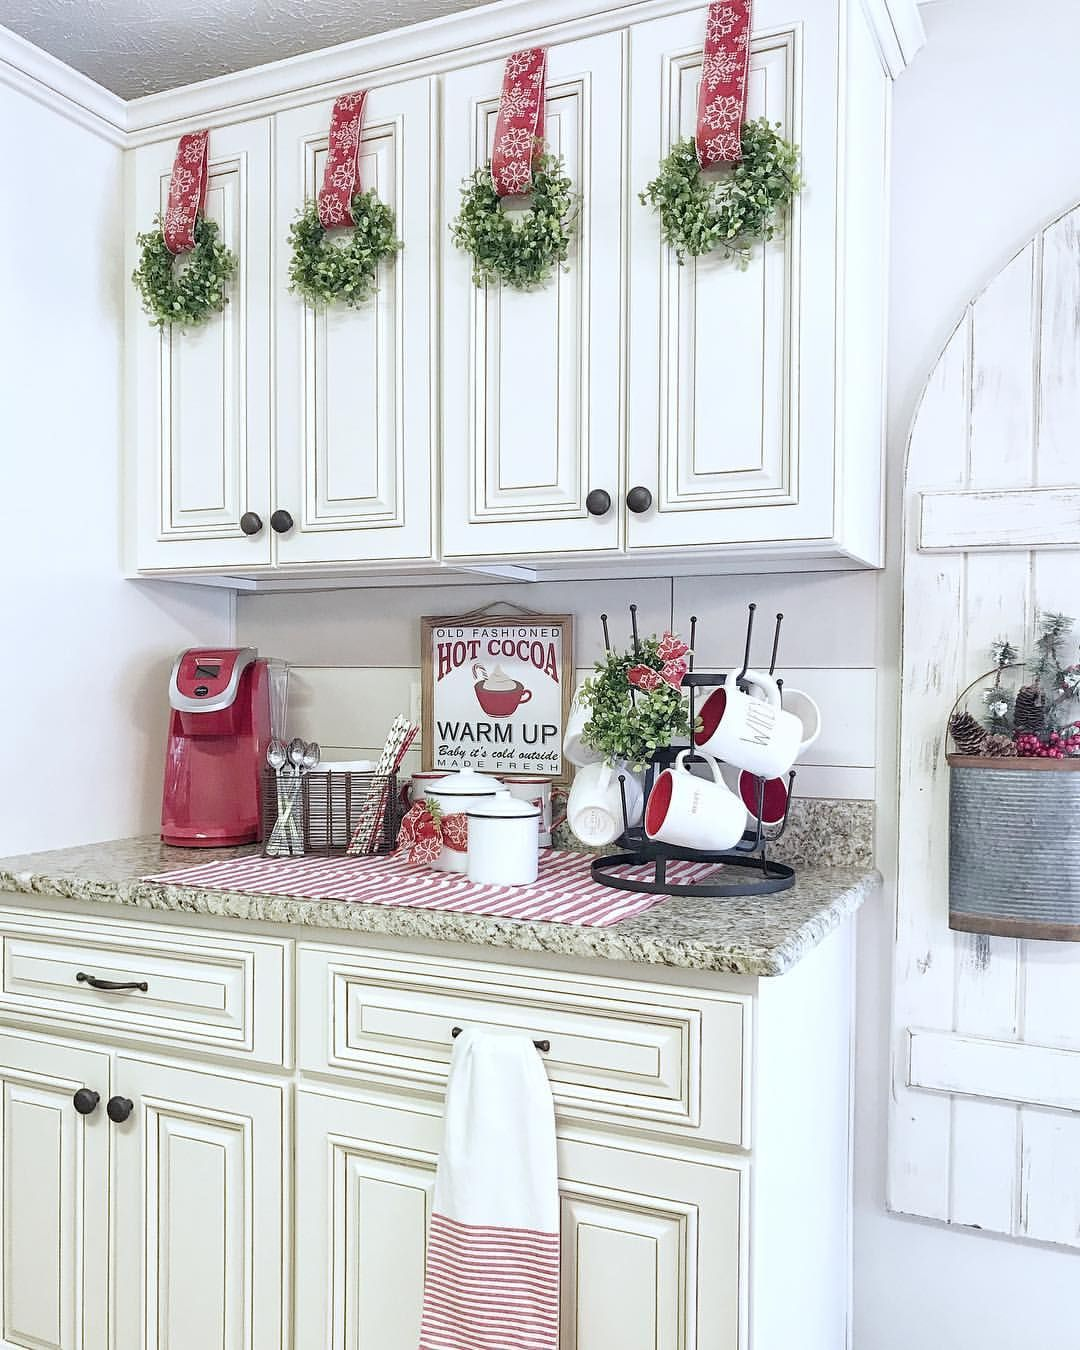 Thislittlehomeofours On Instagram Hot Cocoa Station In The